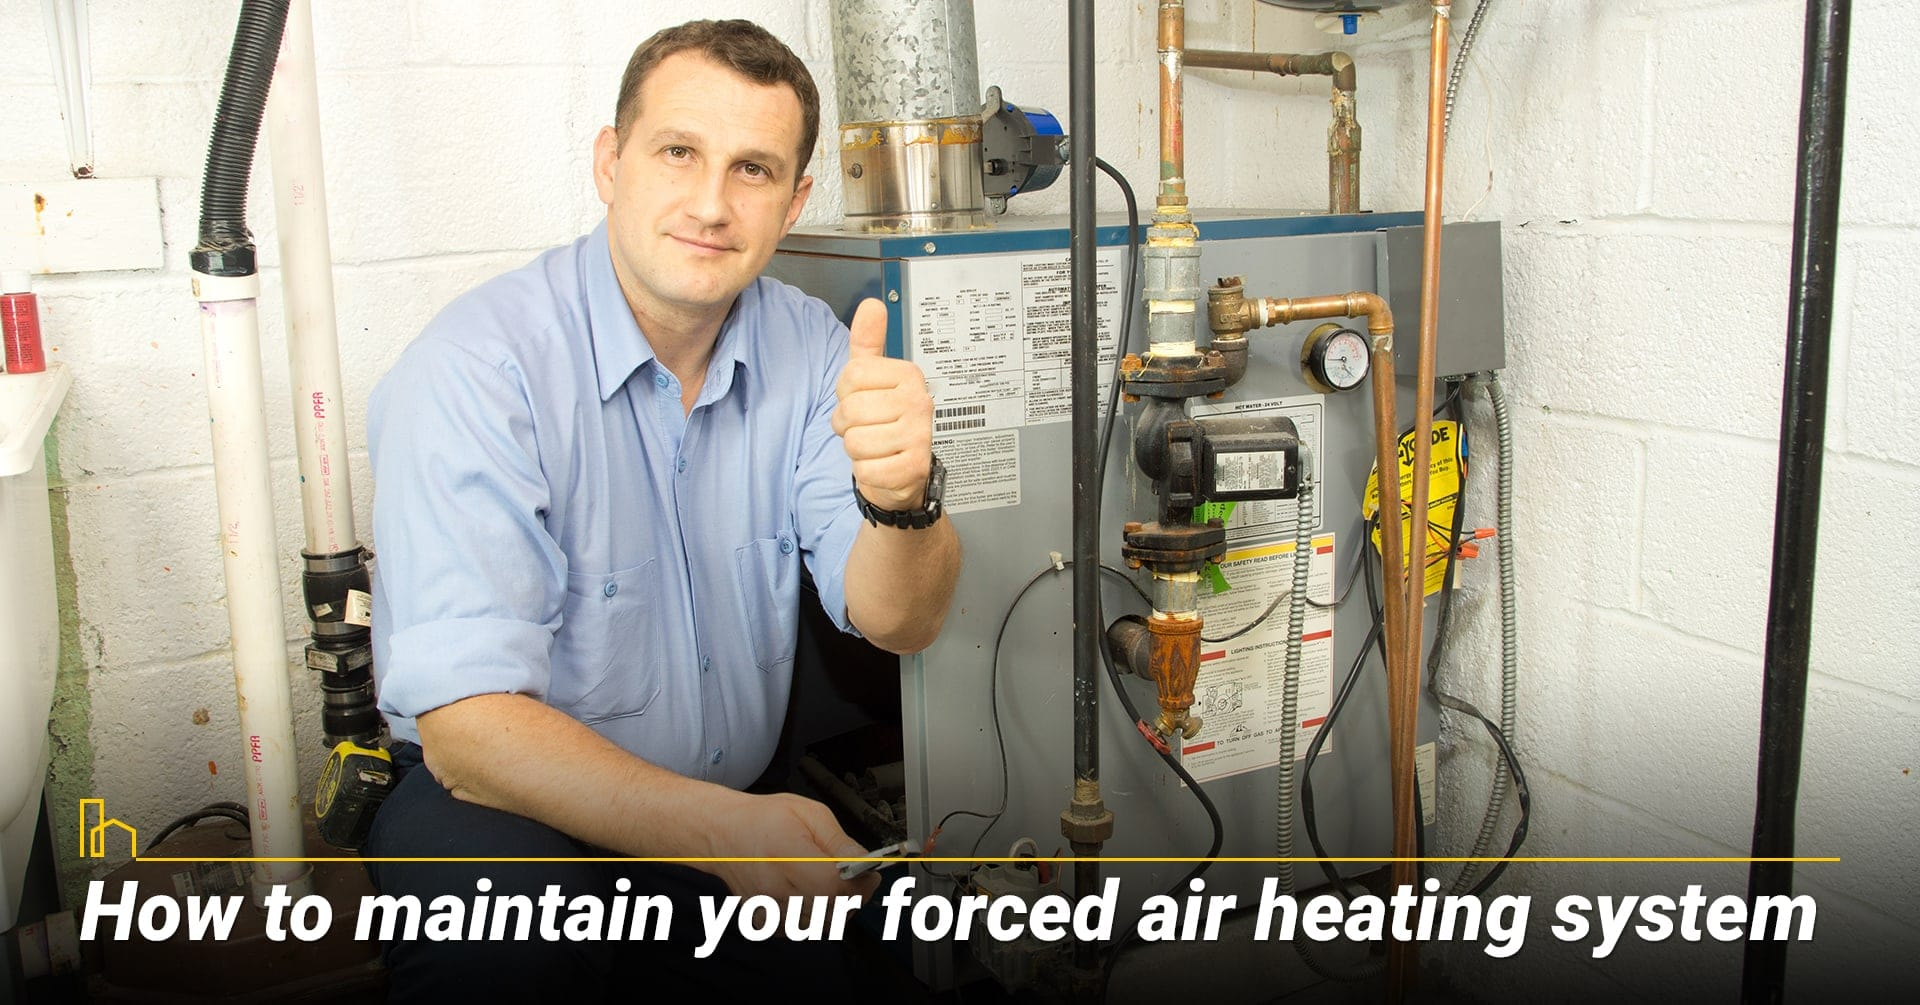 How to maintain your forced air heating system, way to keep forced air system function properly